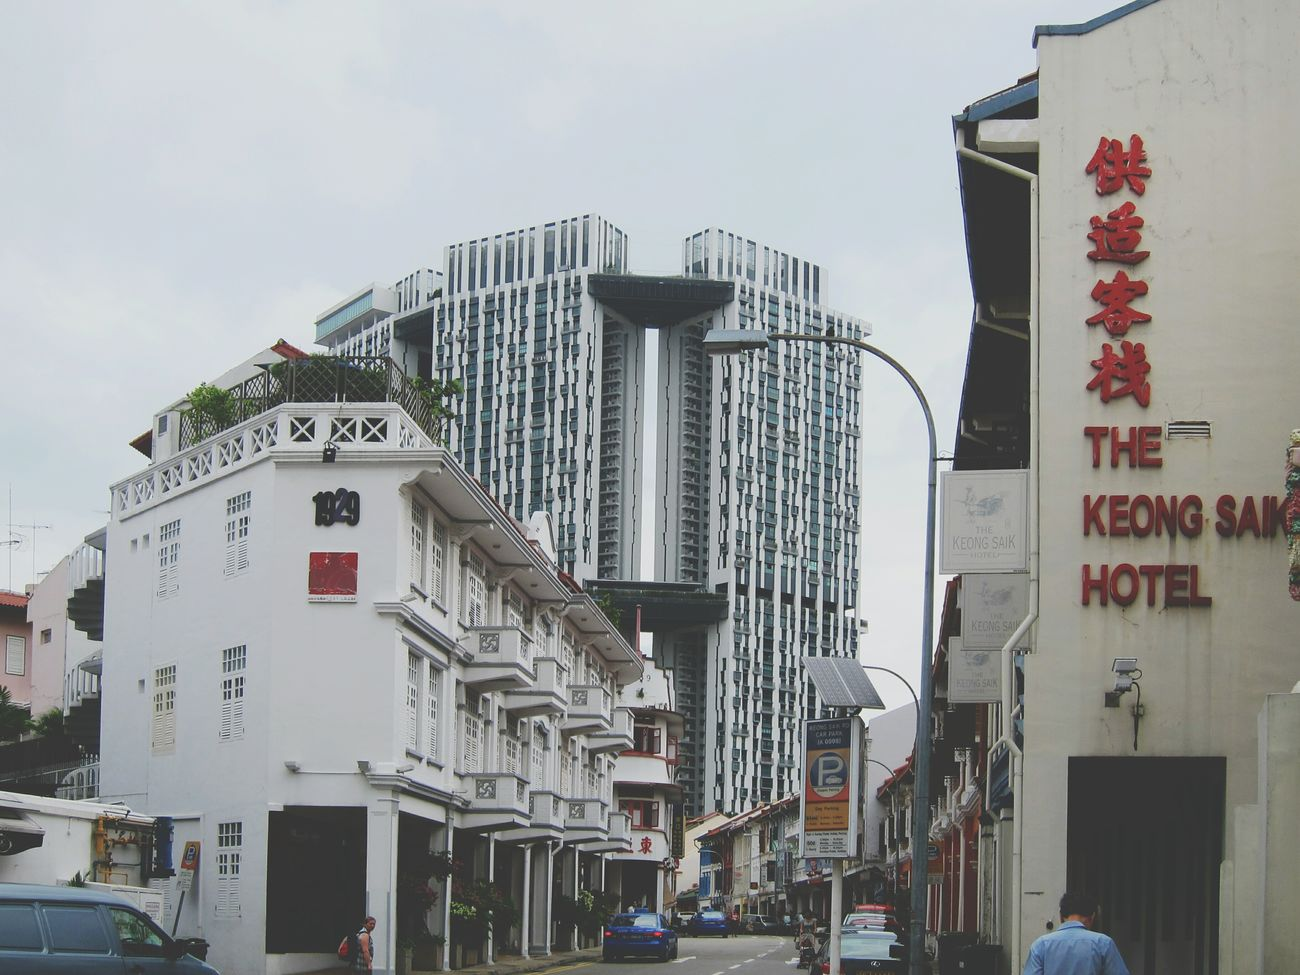 New & Old 新與舊 Streetphoto_color Architecture_collection Keongsaik  Singapore Hotel Open Edit Streetphotography Shophouses